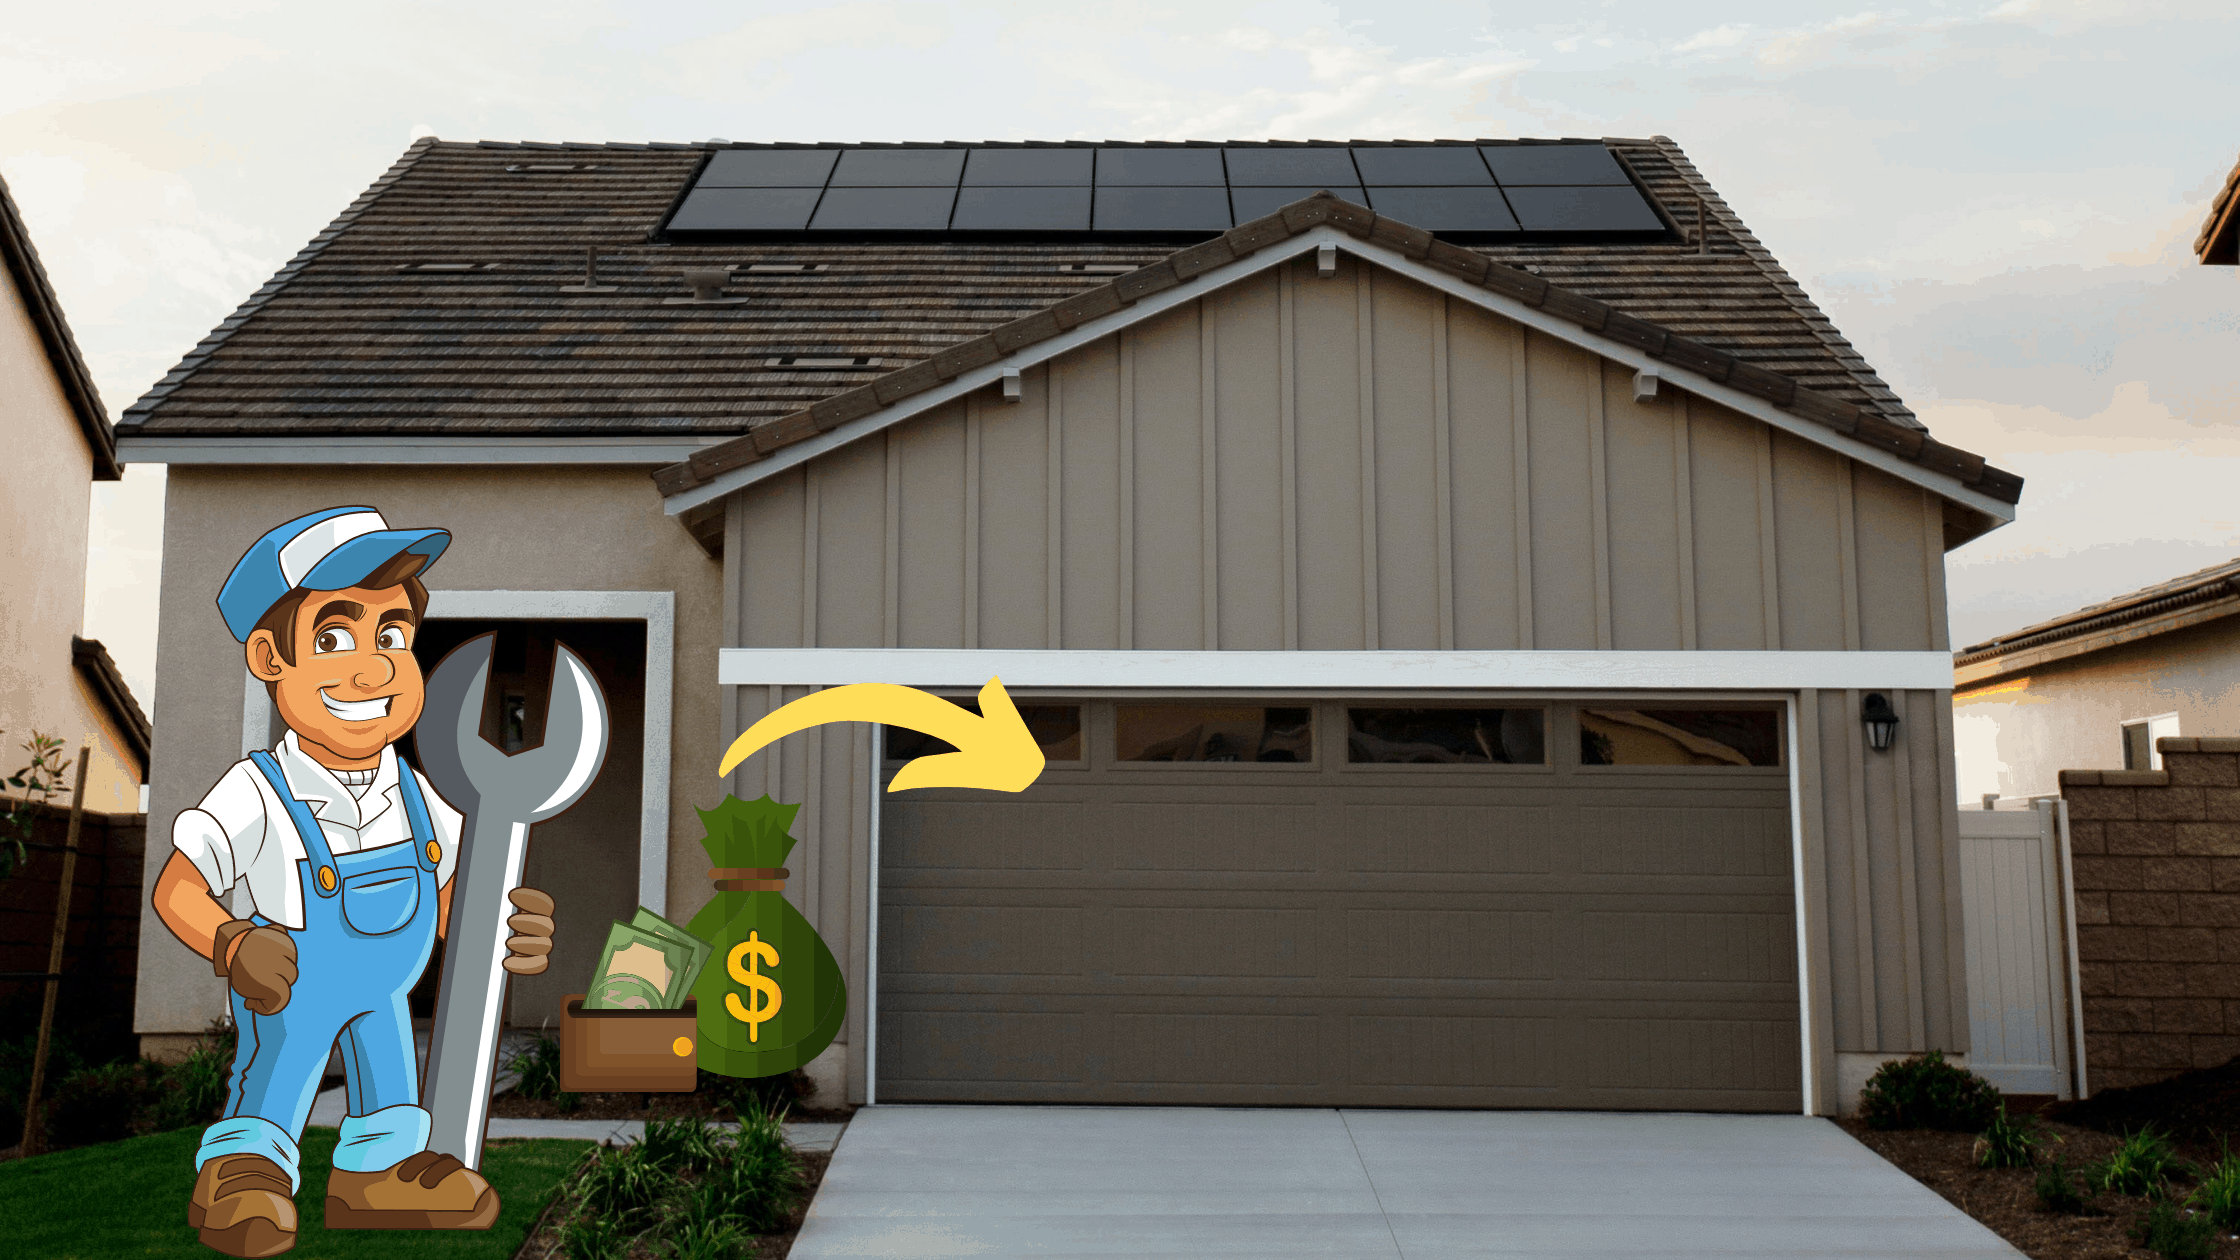 How Much Does It Cost To Build A Garage: Attach, Detach Per Square Foot?